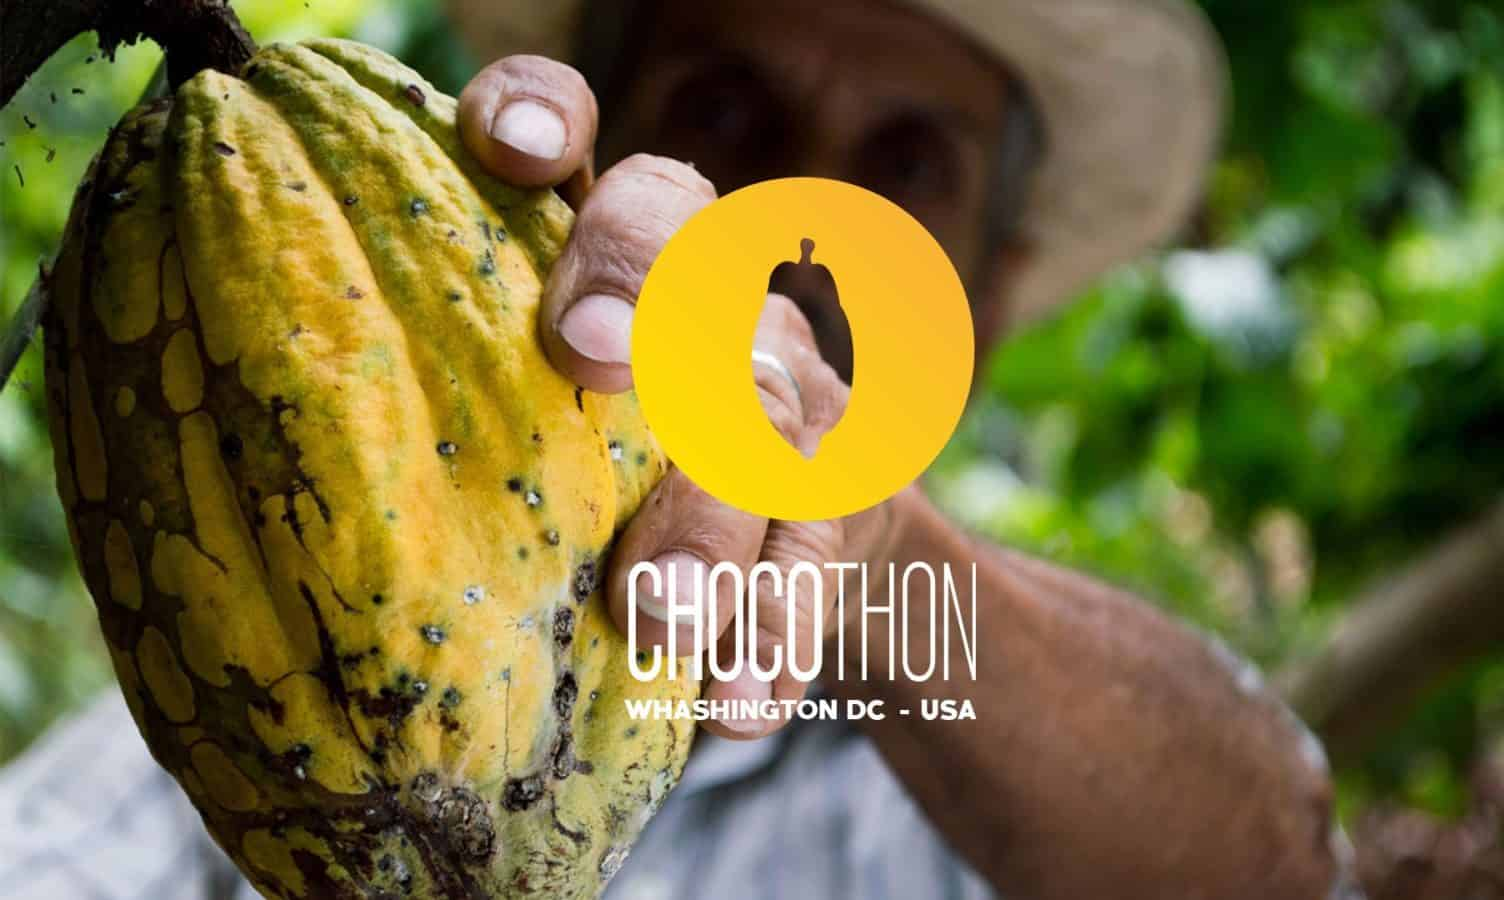 Chocothon is a sustainable innovation initiative that aims toempower and connect cocoa farmers,creating new opportunities for them and other value chain stakeholders in cocoa production.